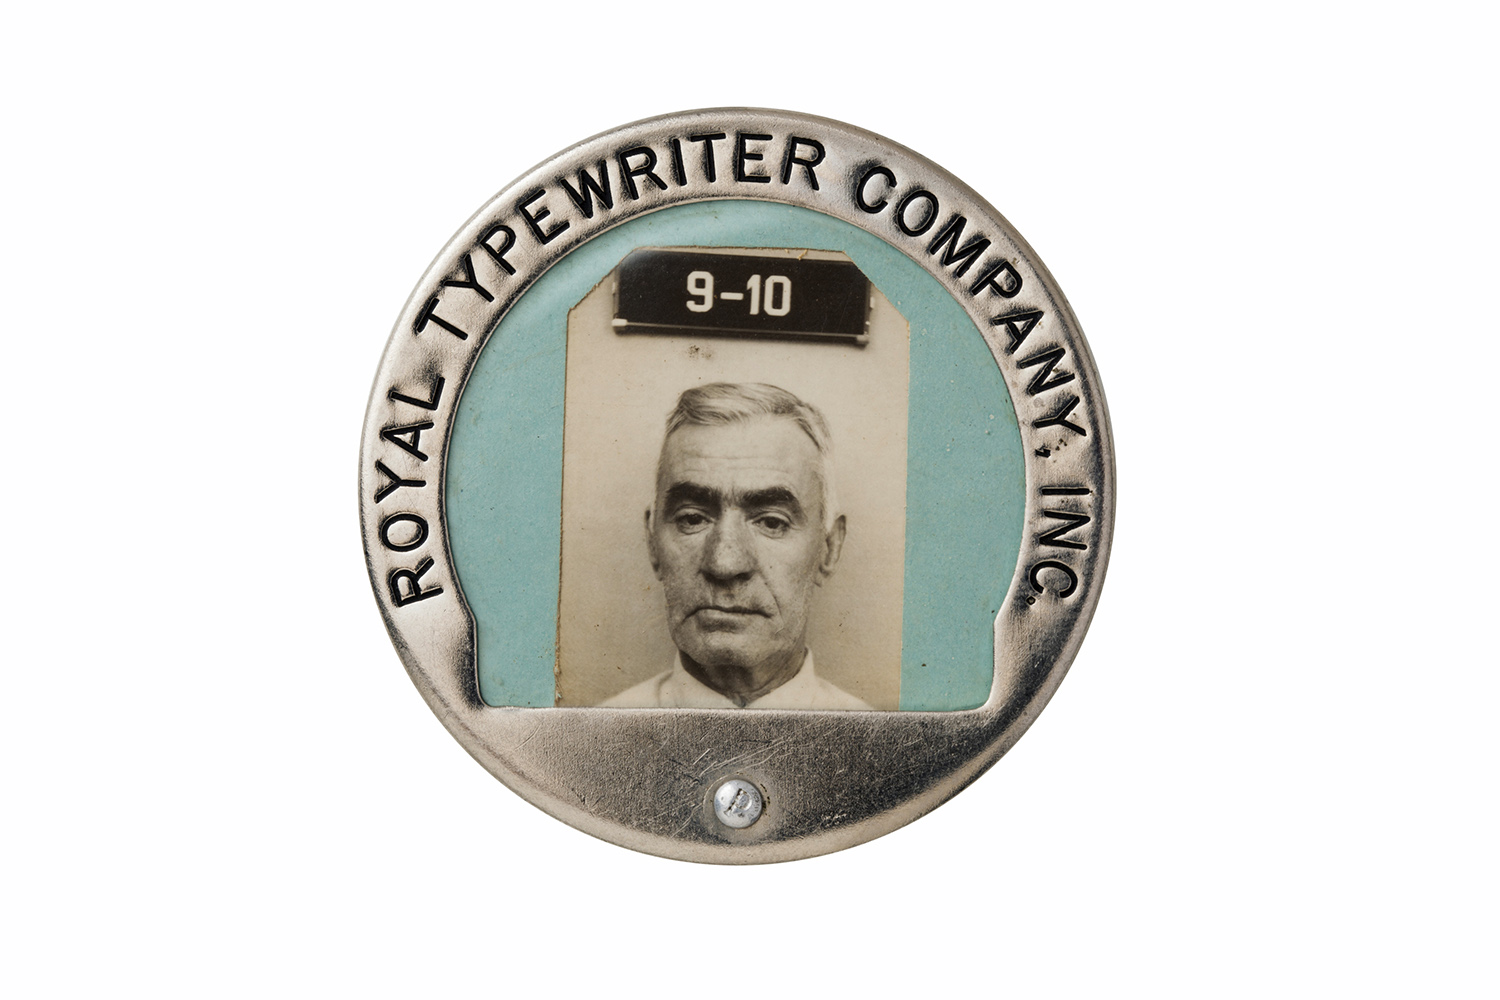 The ID badge of an employee at the Royal Typewriter Company.